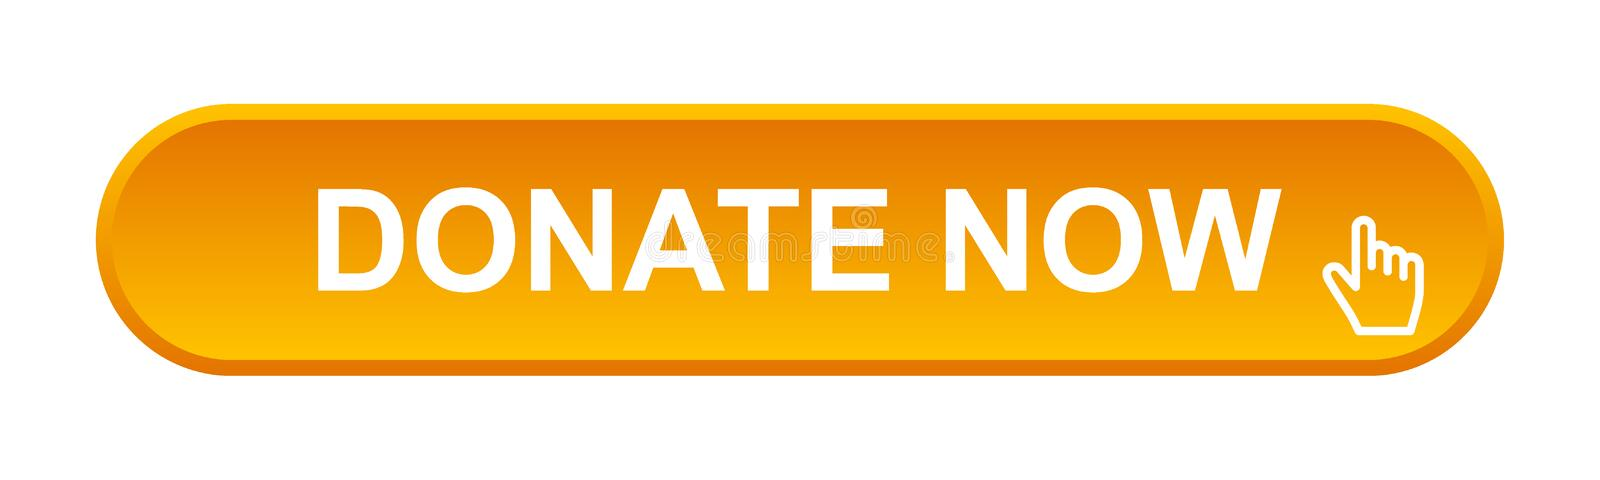 Donate now button. Vector illustration of glossy donate now web button on isolated white background royalty free illustration